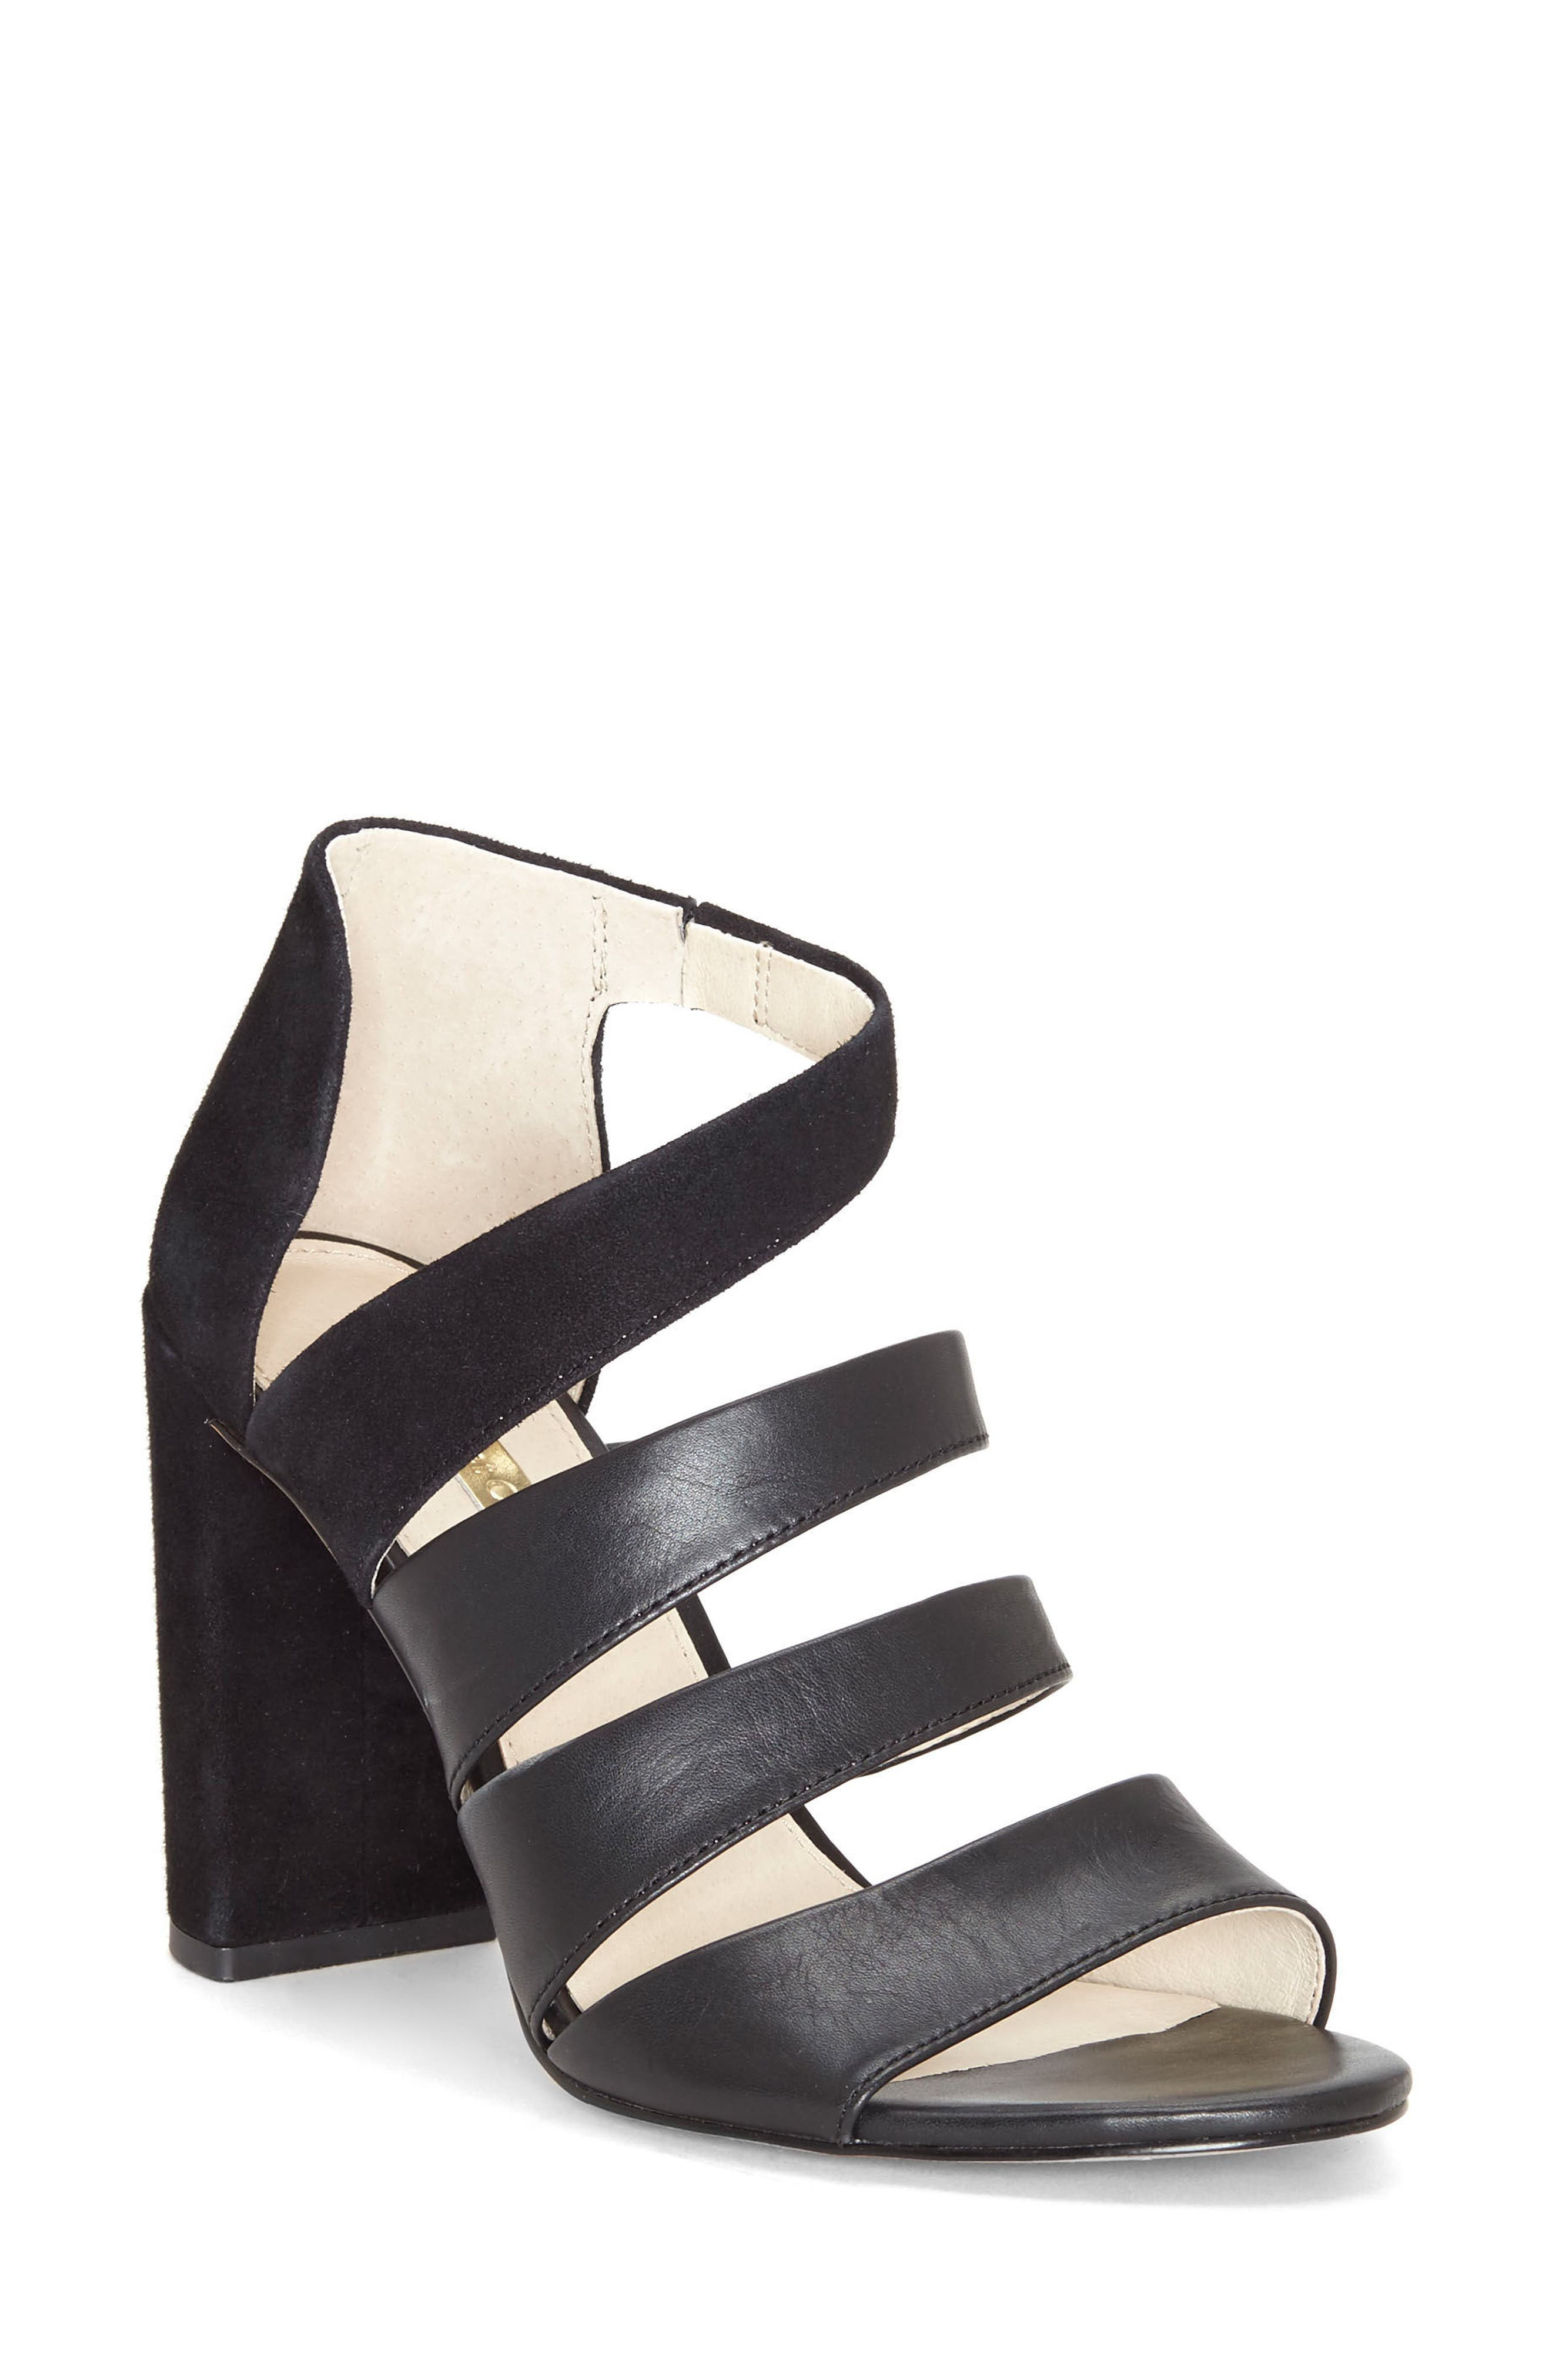 Alternate Image 1 Selected - Louise et Cie Kainey Strappy Sandal (Women)